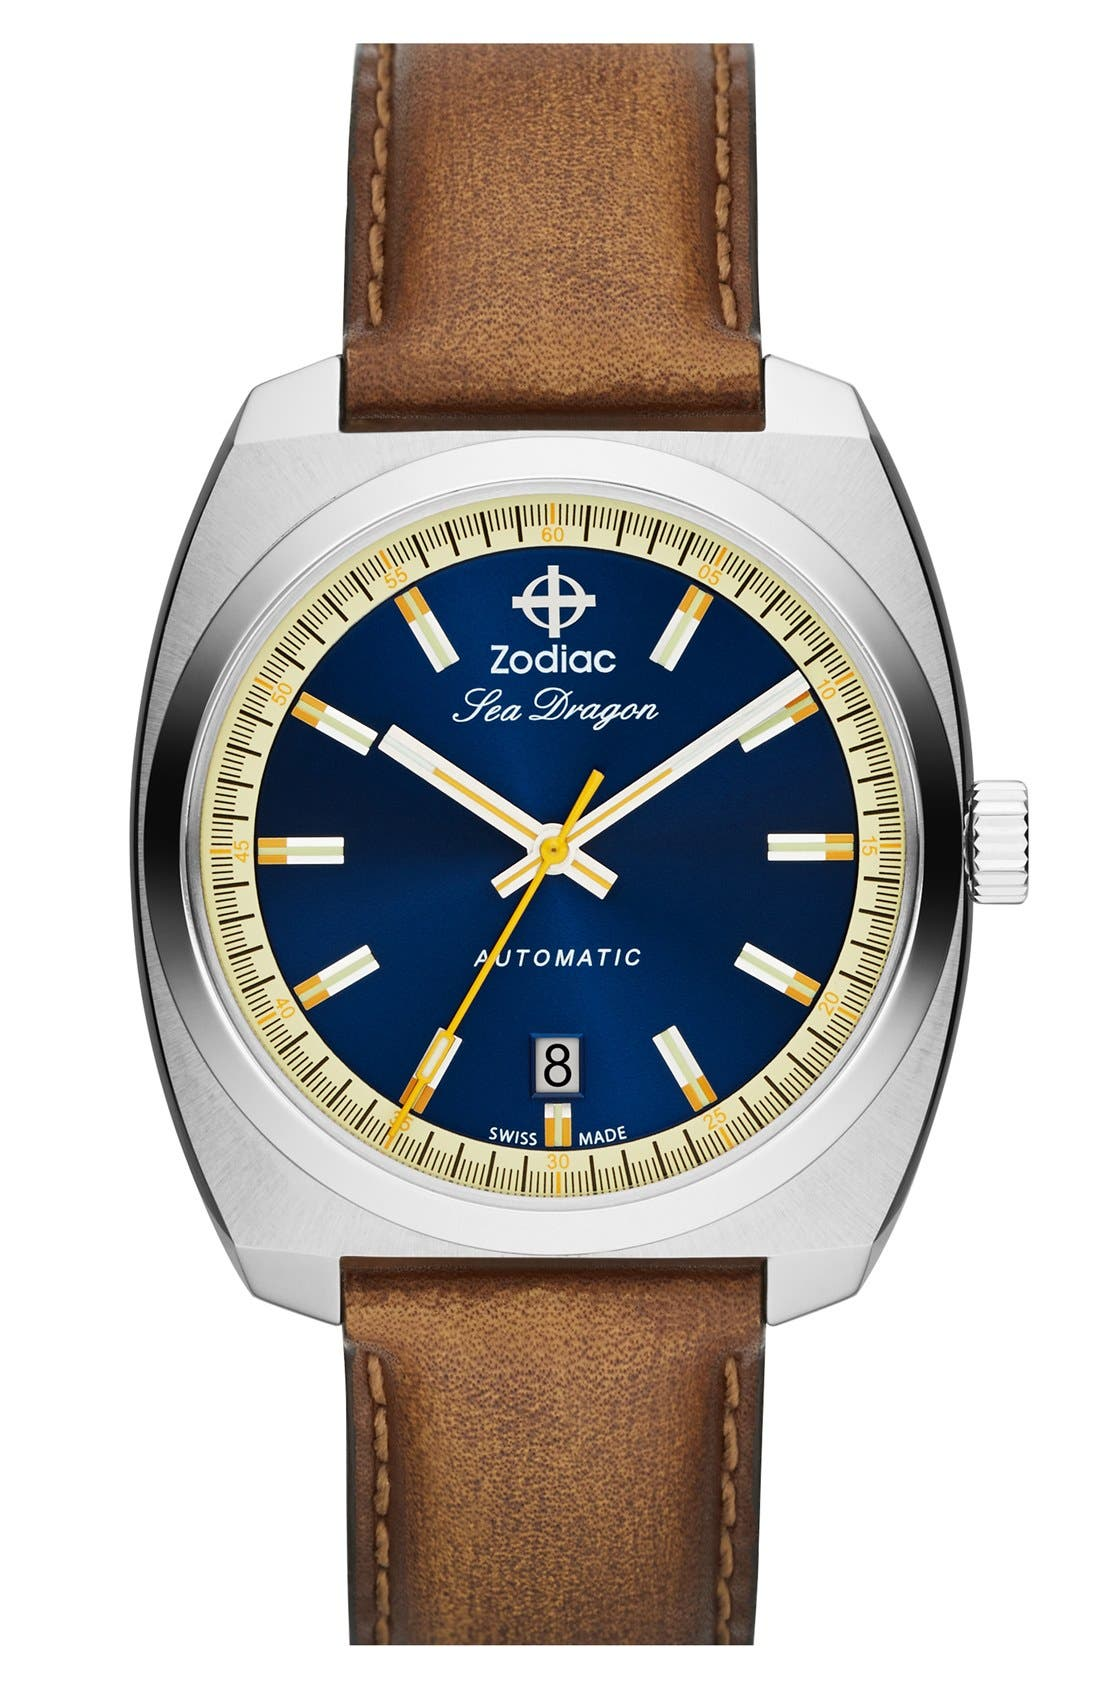 Main Image - Zodiac 'Sea Dragon' Automatic Leather Strap Watch, 39mm